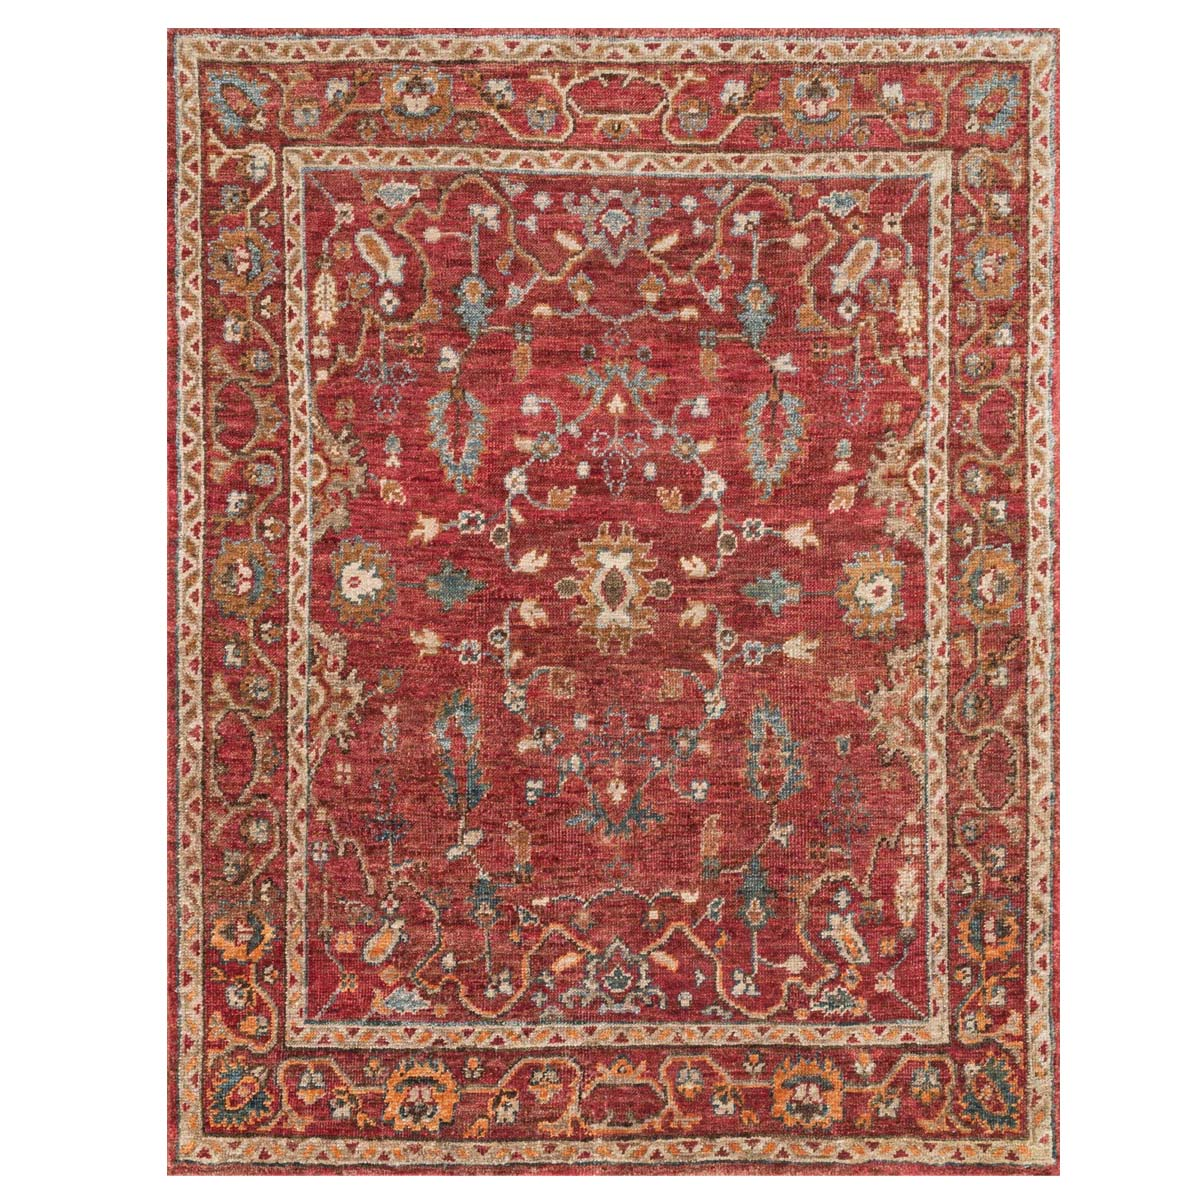 Saloon Red Rug - 2 x 3 - OVERSTOCK